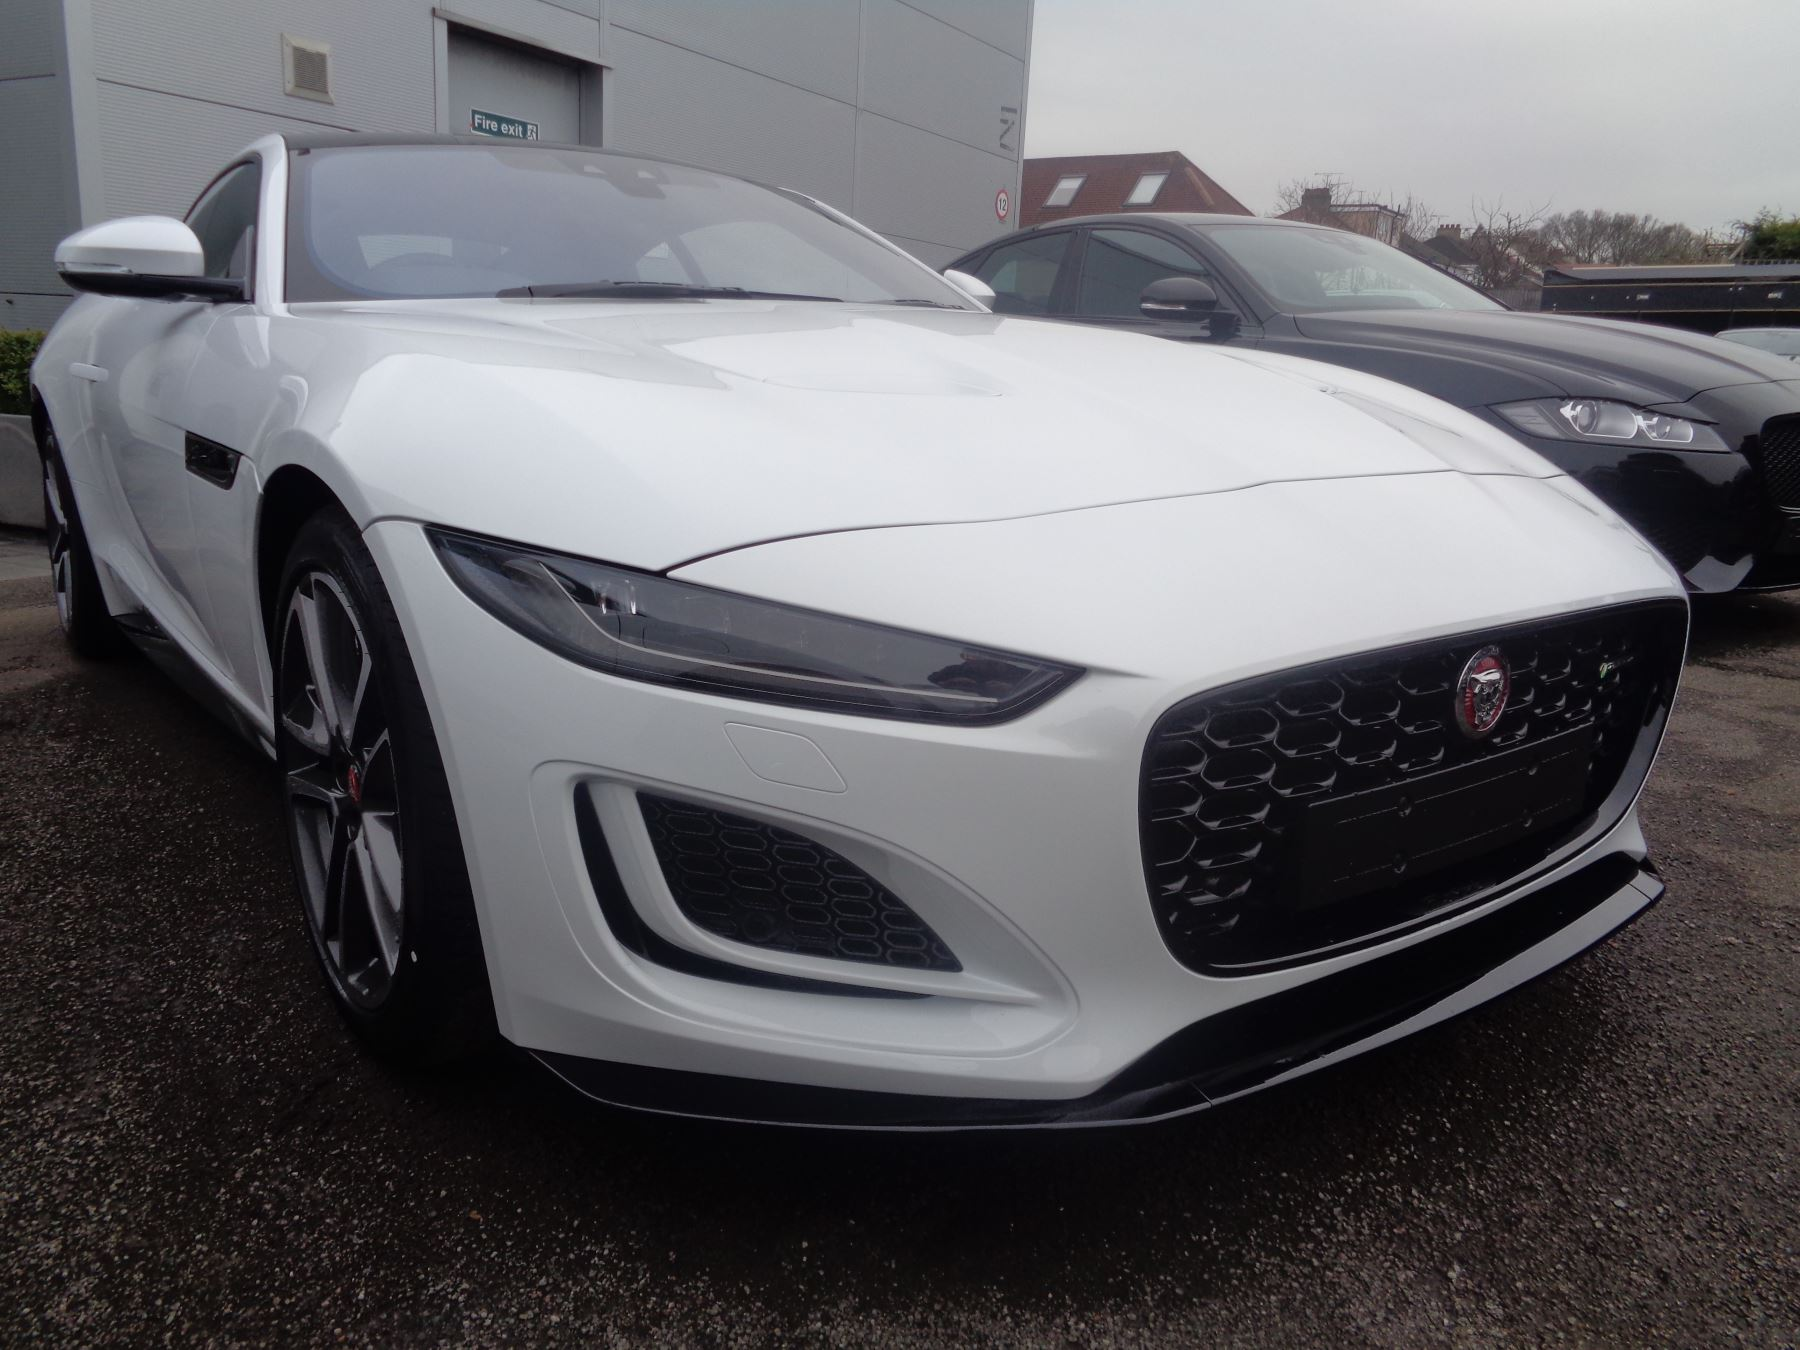 Jaguar F-TYPE 2.0 P300 R-Dynamic Automatic 2 door Coupe (2021)